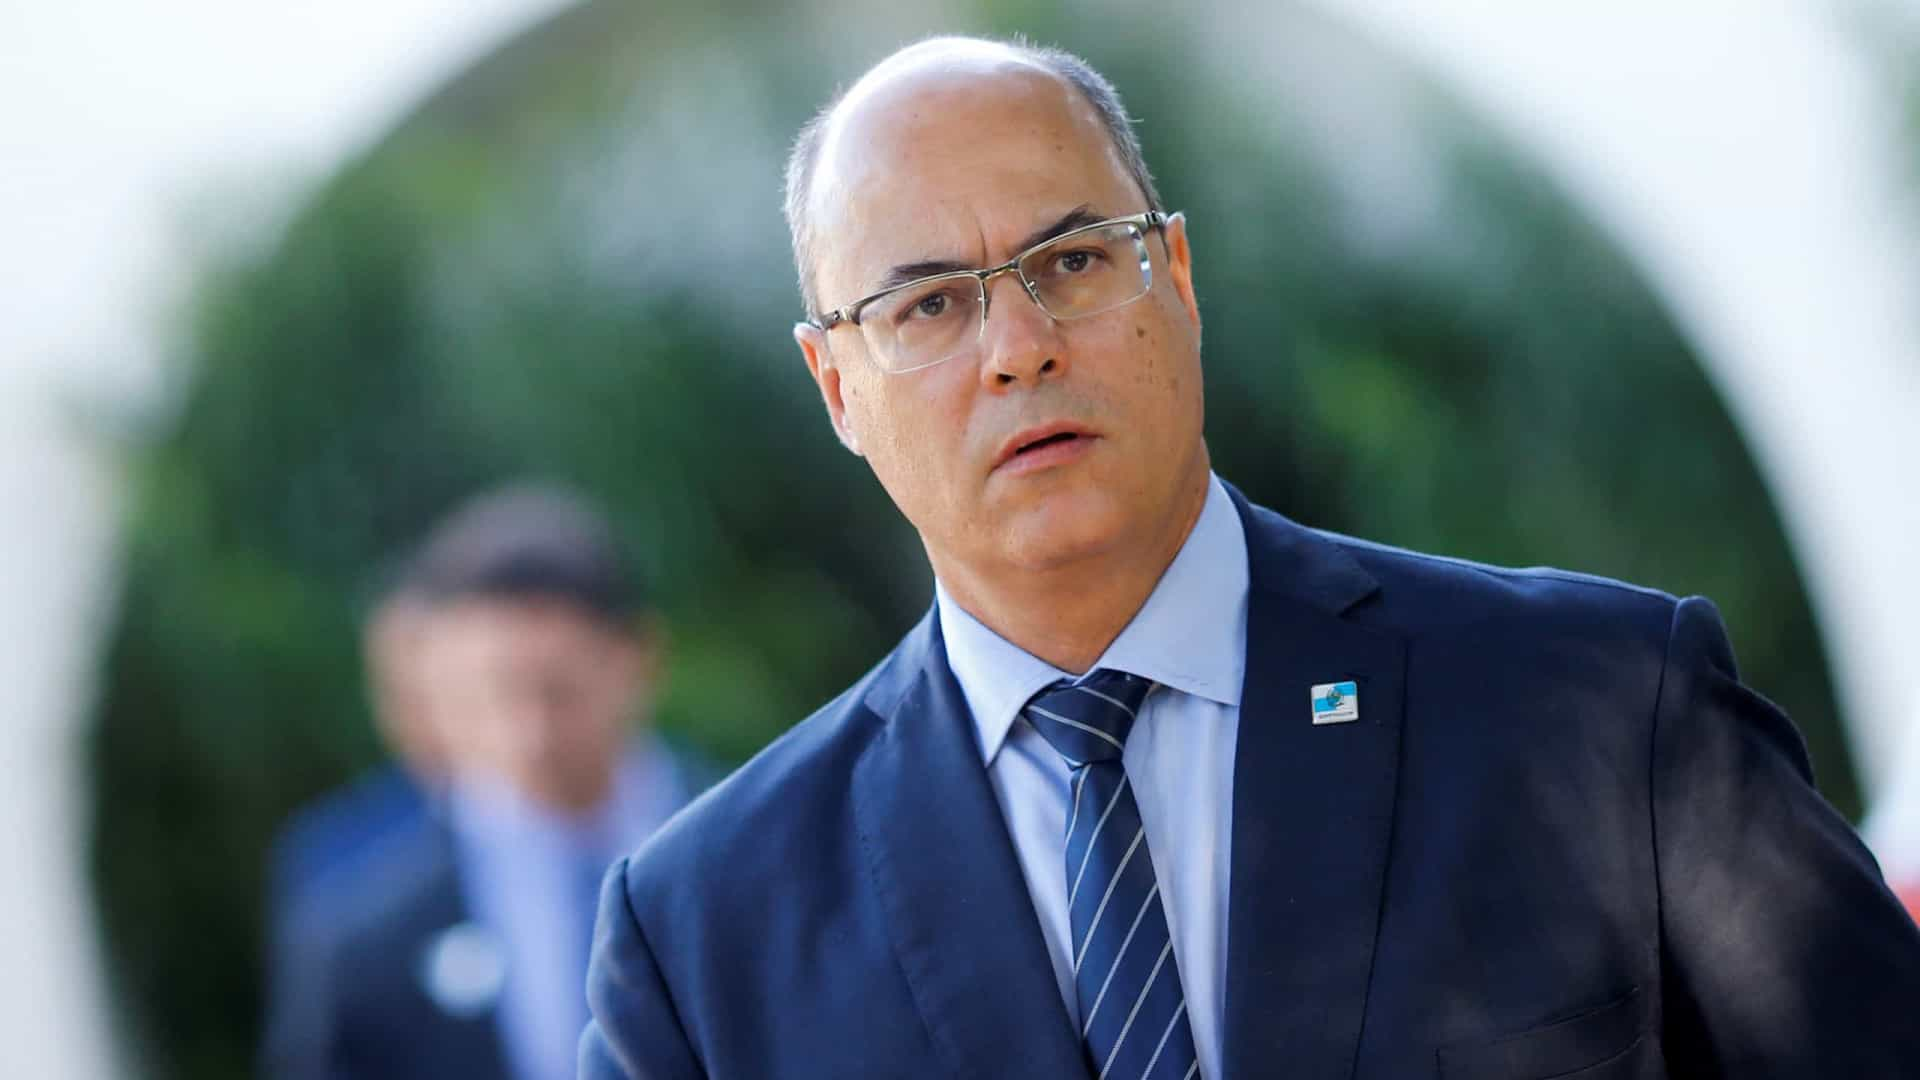 Alerj vota impeachment de governador afastado do Rio, Wilson Witzel